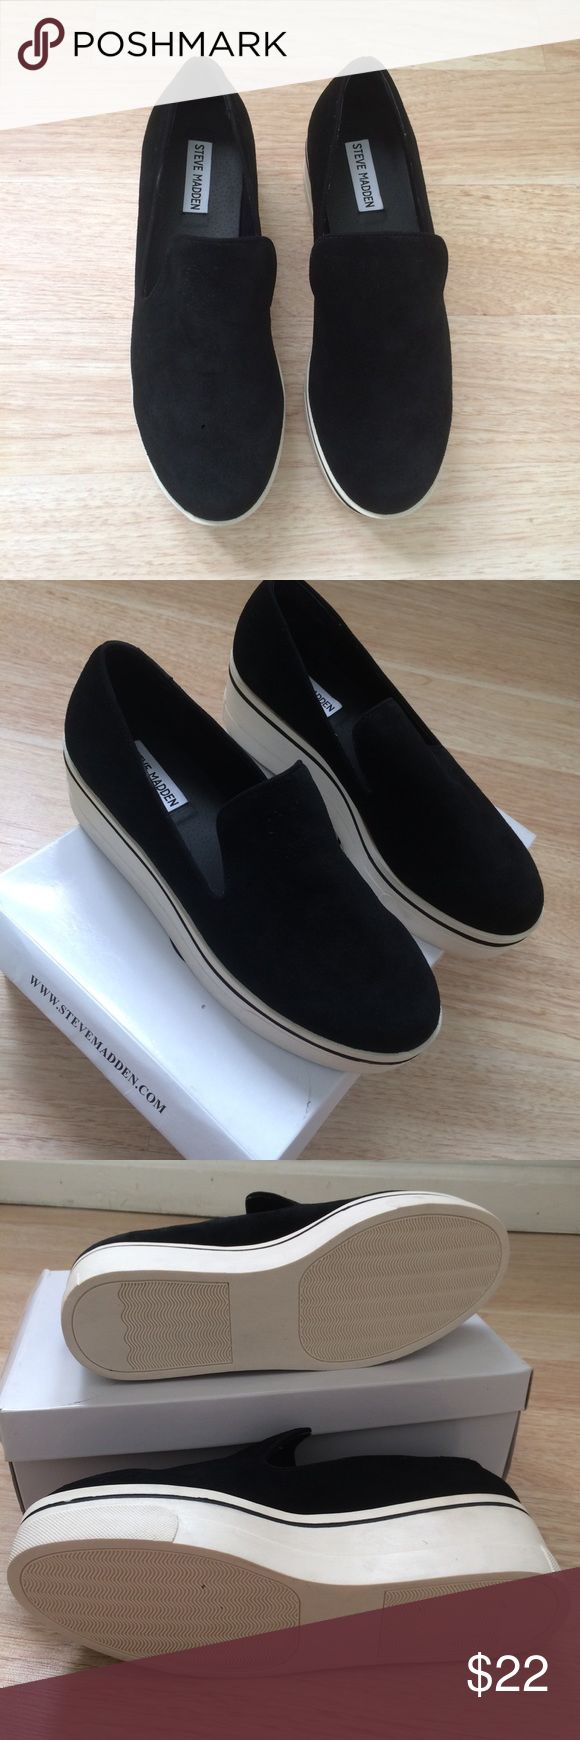 Steve Madden Black Suede Slip On Shoes From Steve Madden size 8.5 Black Suede High Platform Slip On Shoes in good condition bundle if interested   Tags Brandy Melville urban outfitters free people vans zara forever 21 H&M Steve Madden Shoes Sneakers